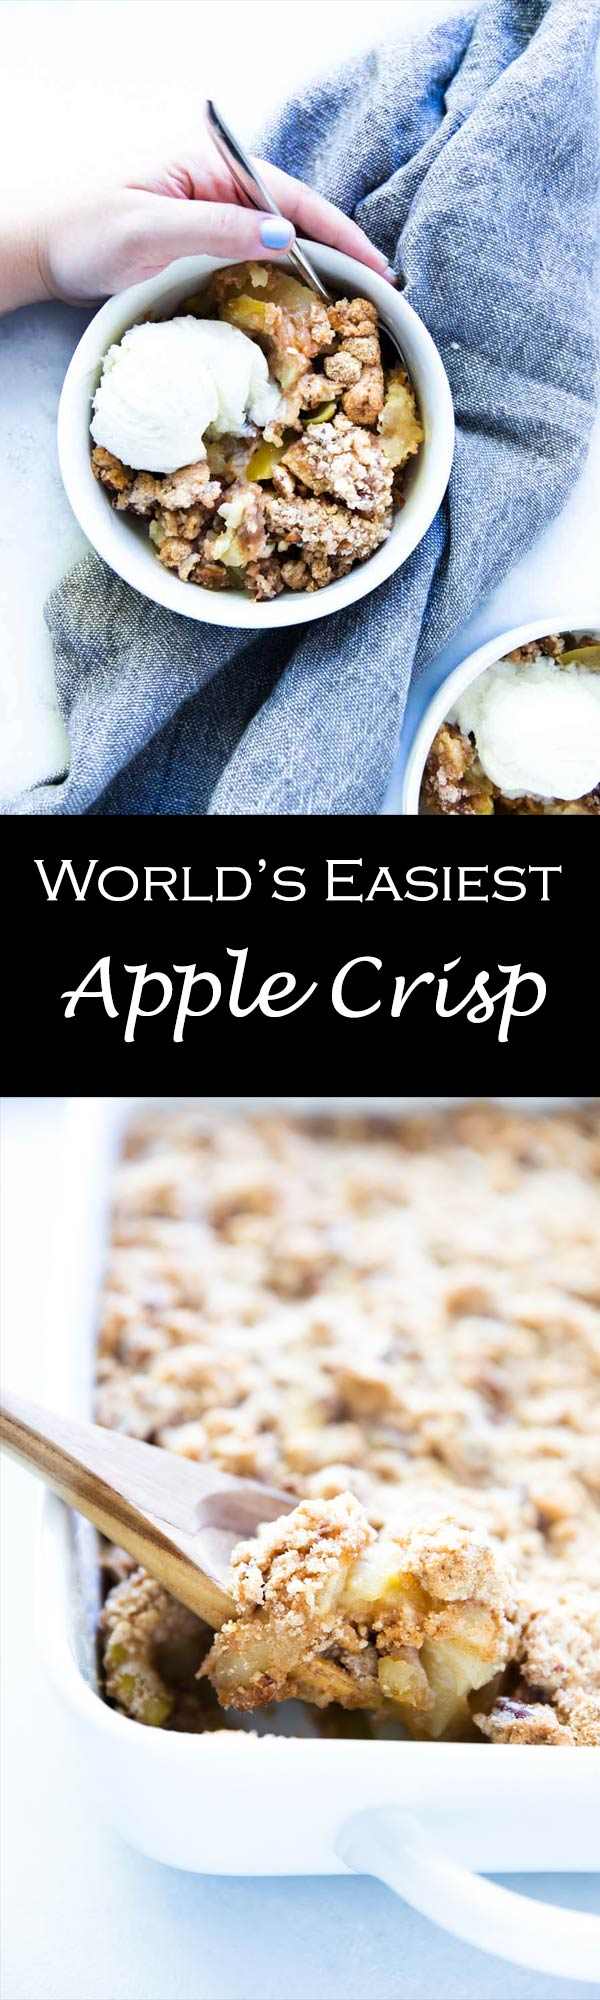 This easy recipe for apple crisp is made without oats and has perfectly baked apples and crunchy clumps of cinnamon-sugar goodness!